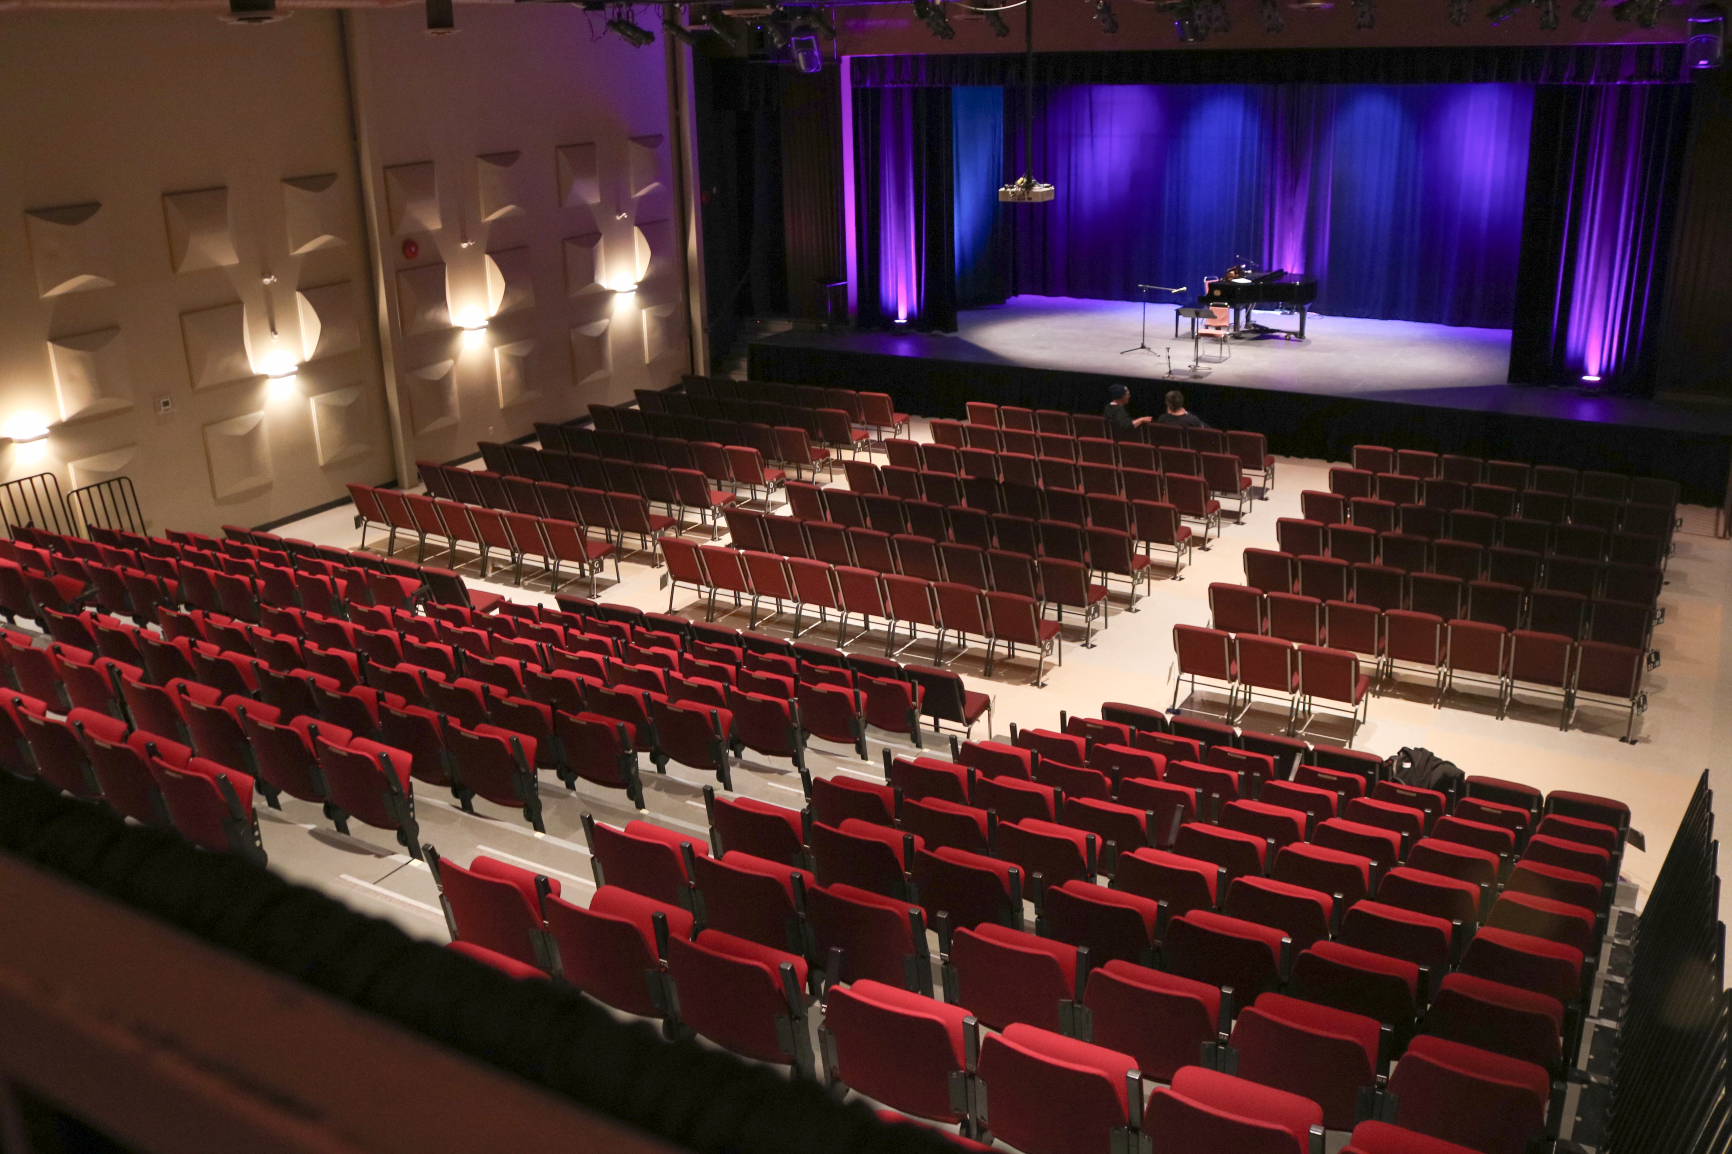 Glesby Theatre - The theatre has a state-of-the-art sound system, performance lighting, and a large stage suitable for dance troupes, theatre companies and other performances. The theatre has a maximum of 444 seats. A typical concert set has 418 seats. A Coffee House setup, of tables and chairs, seats 200.